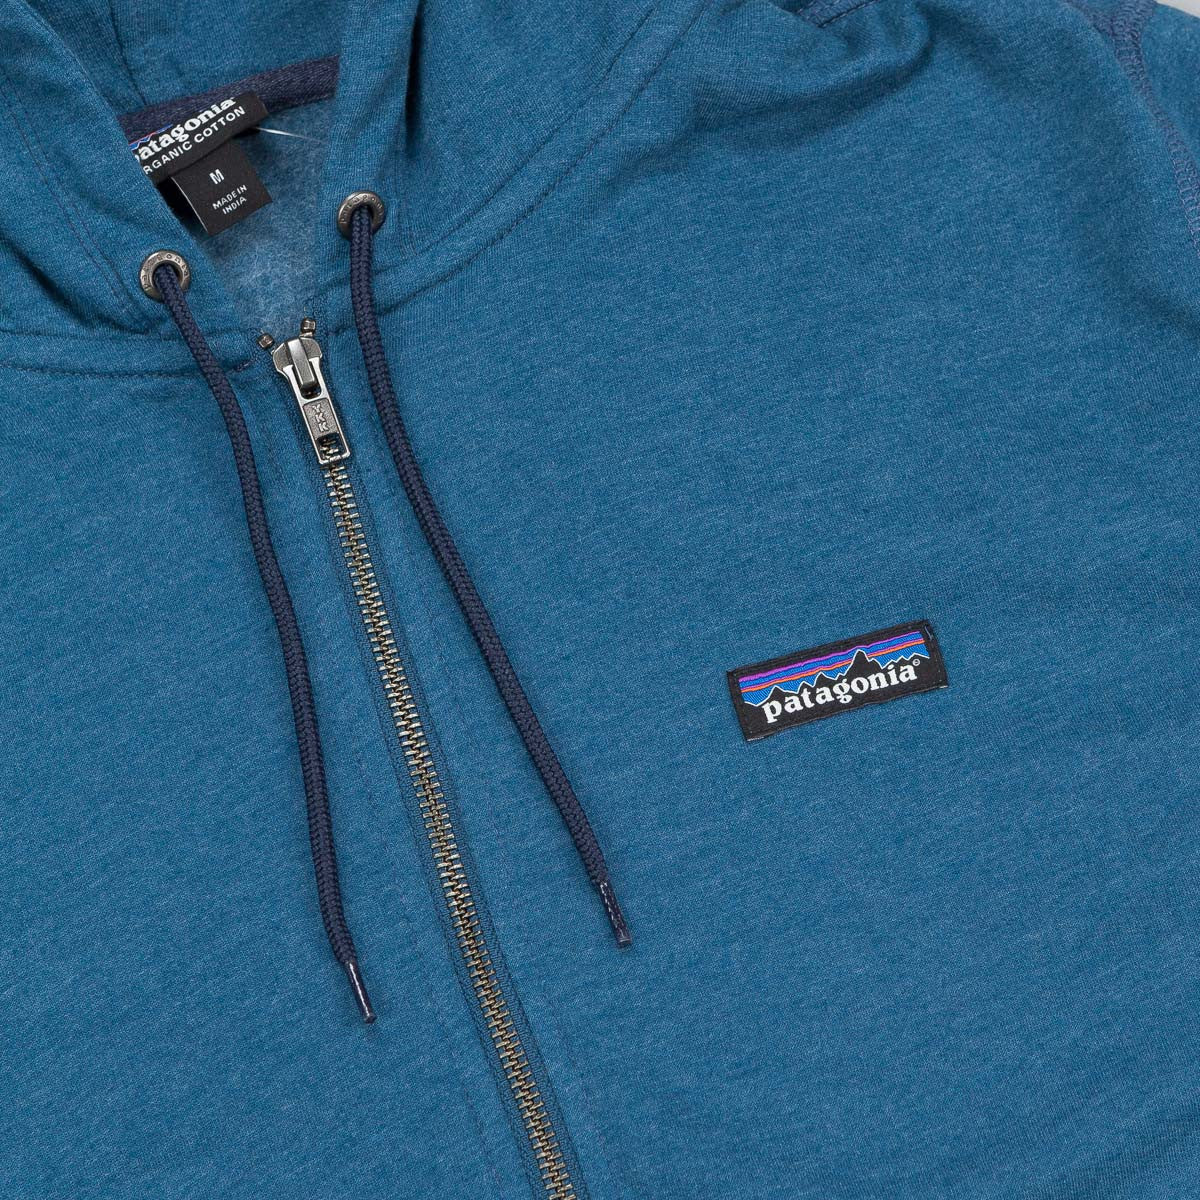 Patagonia Lightweight Full Zip Hooded Sweatshirt - Glass Blue